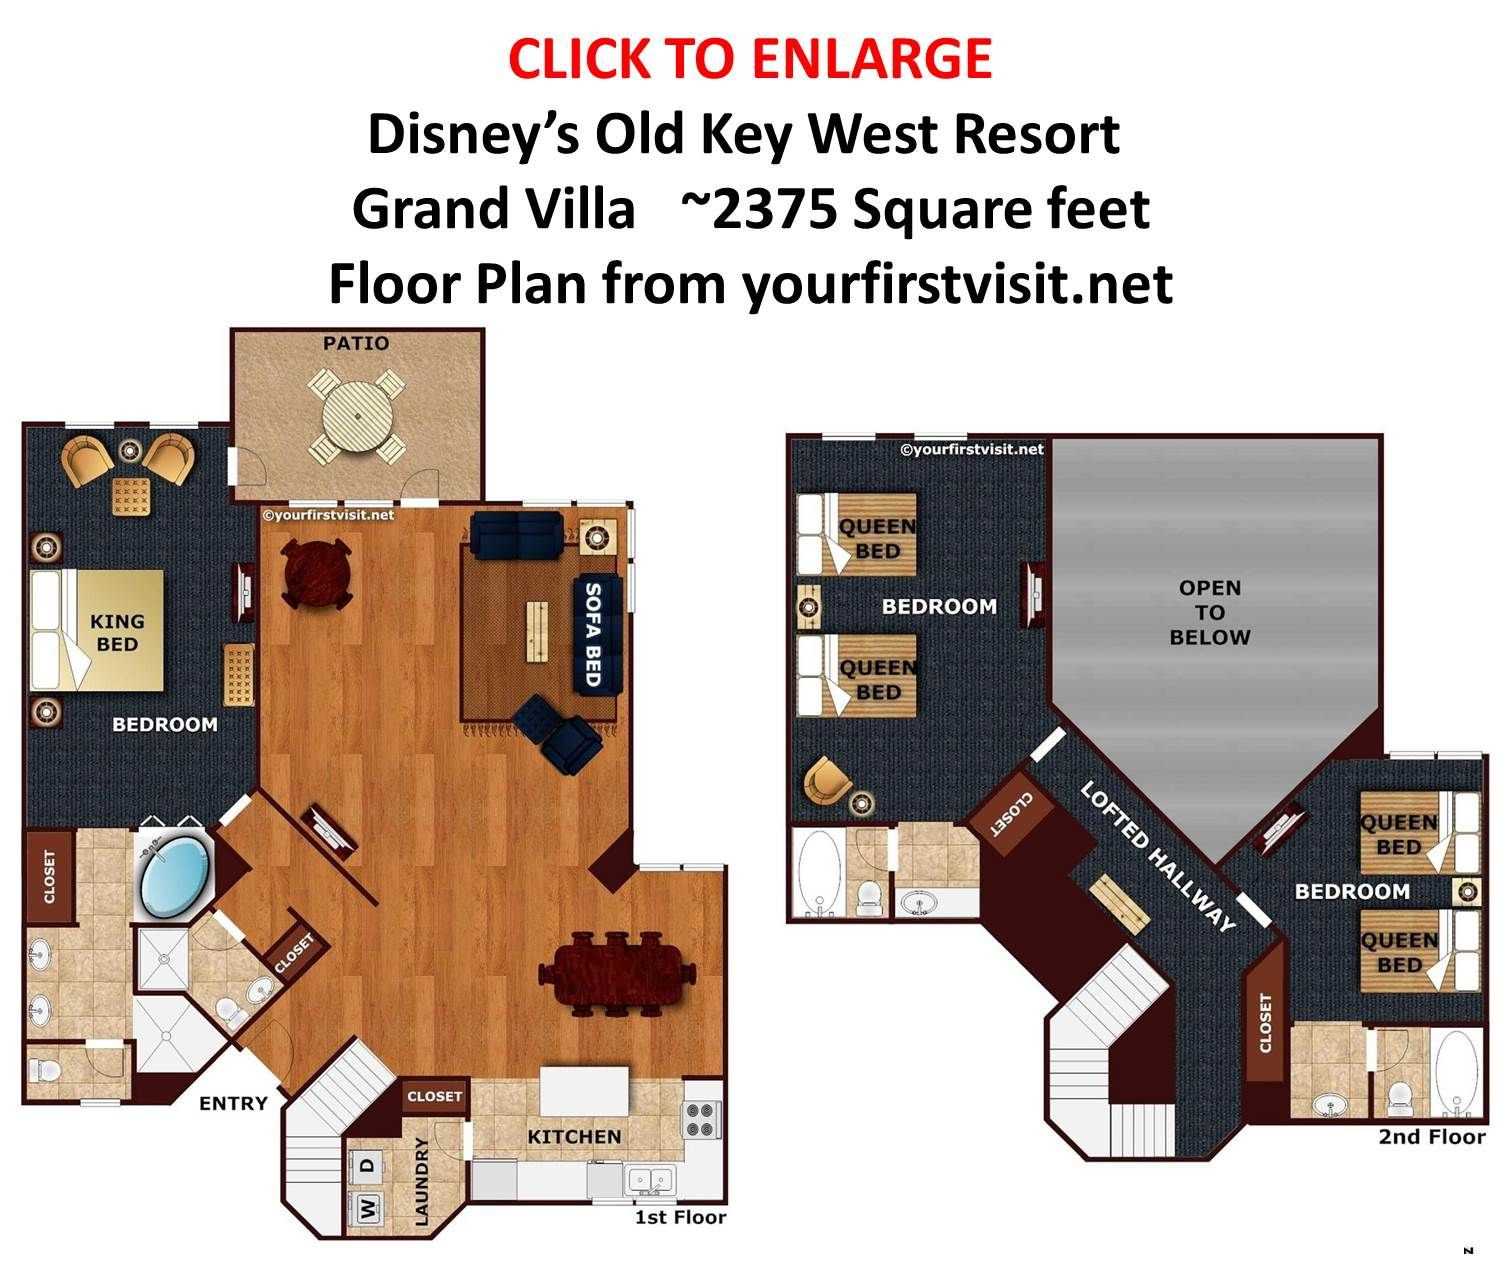 Overview Of Accommodations At Disney S Old Key West Resort Yourfirstvisit Net Key West Resorts Disney Key West Resort Old Key